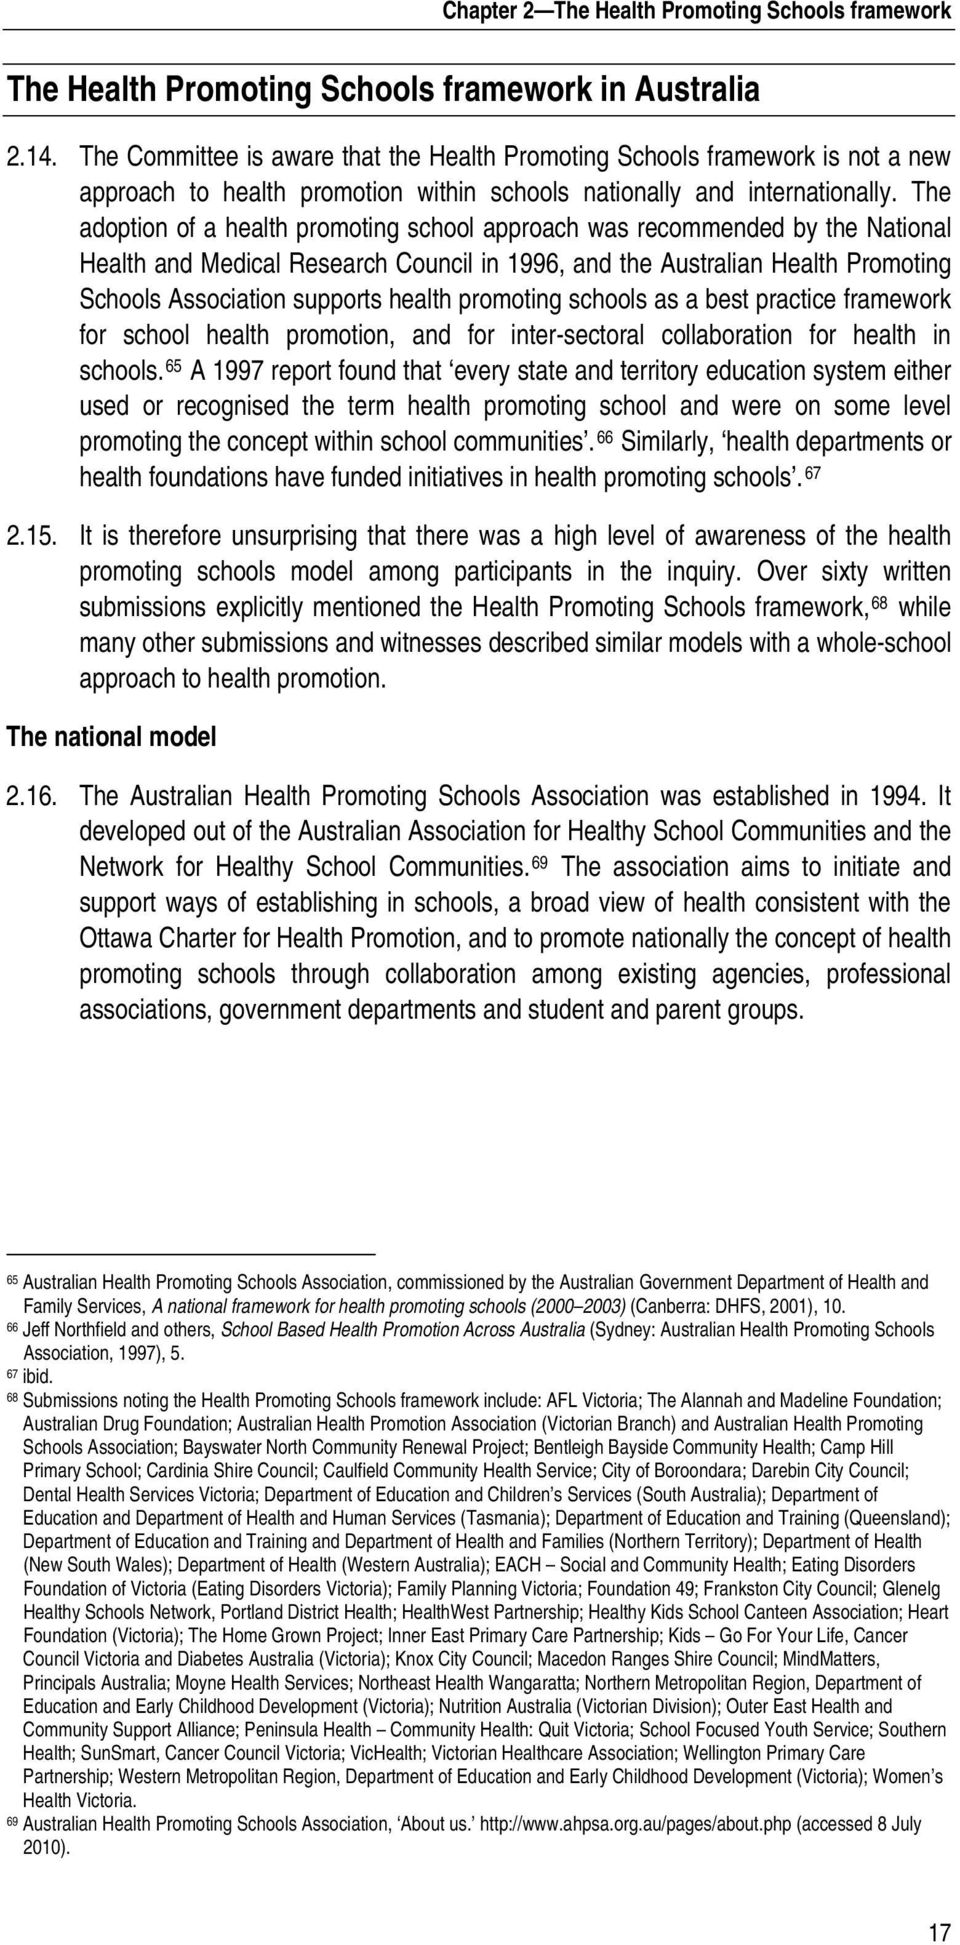 The adoption of a health promoting school approach was recommended by the National Health and Medical Research Council in 1996, and the Australian Health Promoting Schools Association supports health